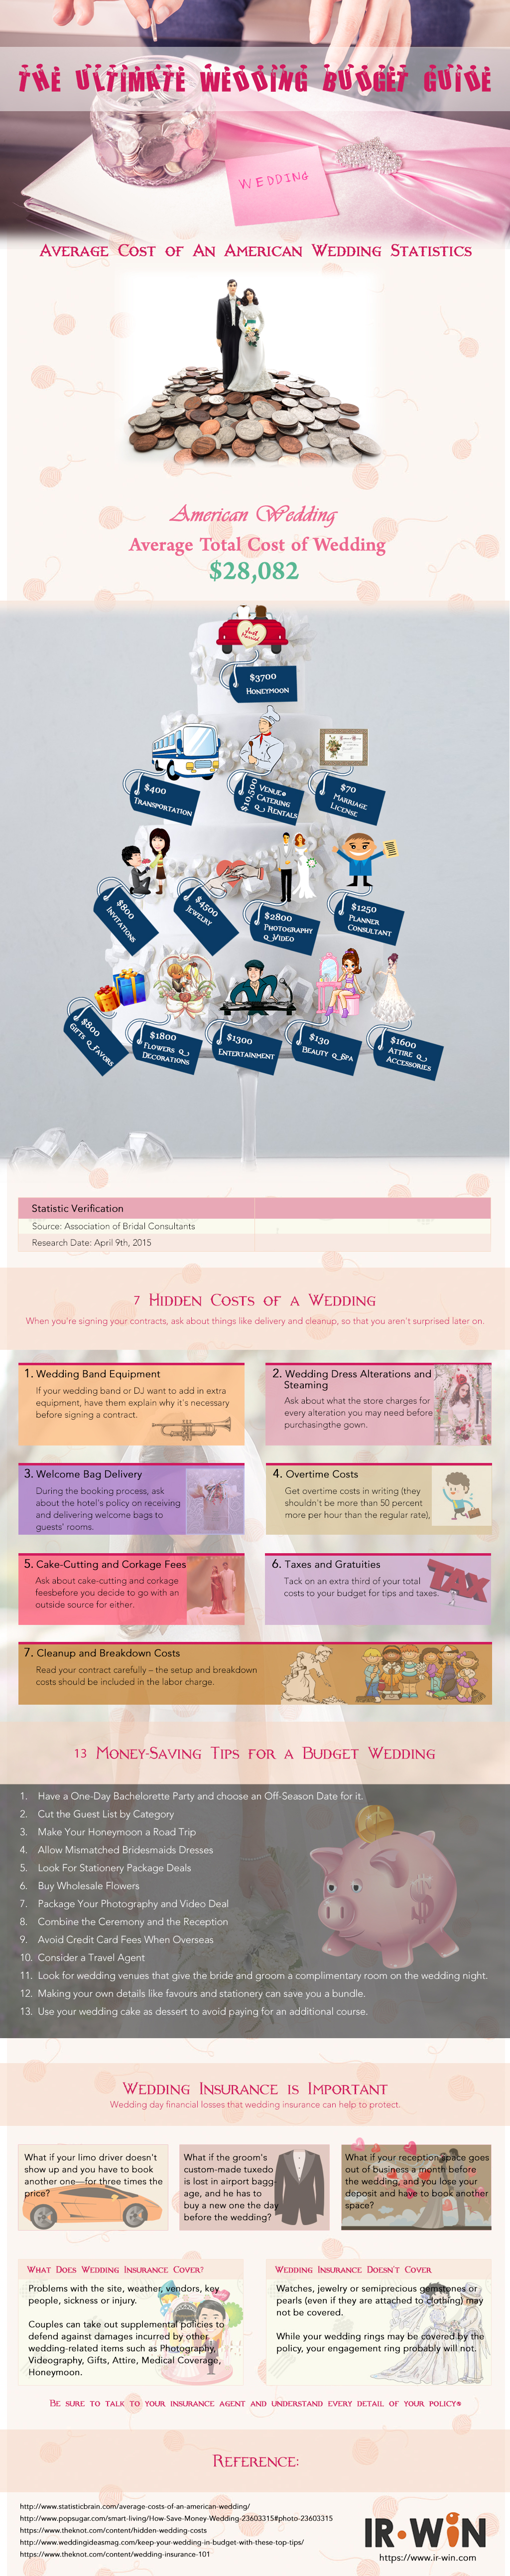 Wedding Planning: The Ultimate Wedding Budget Guide (Infographic)